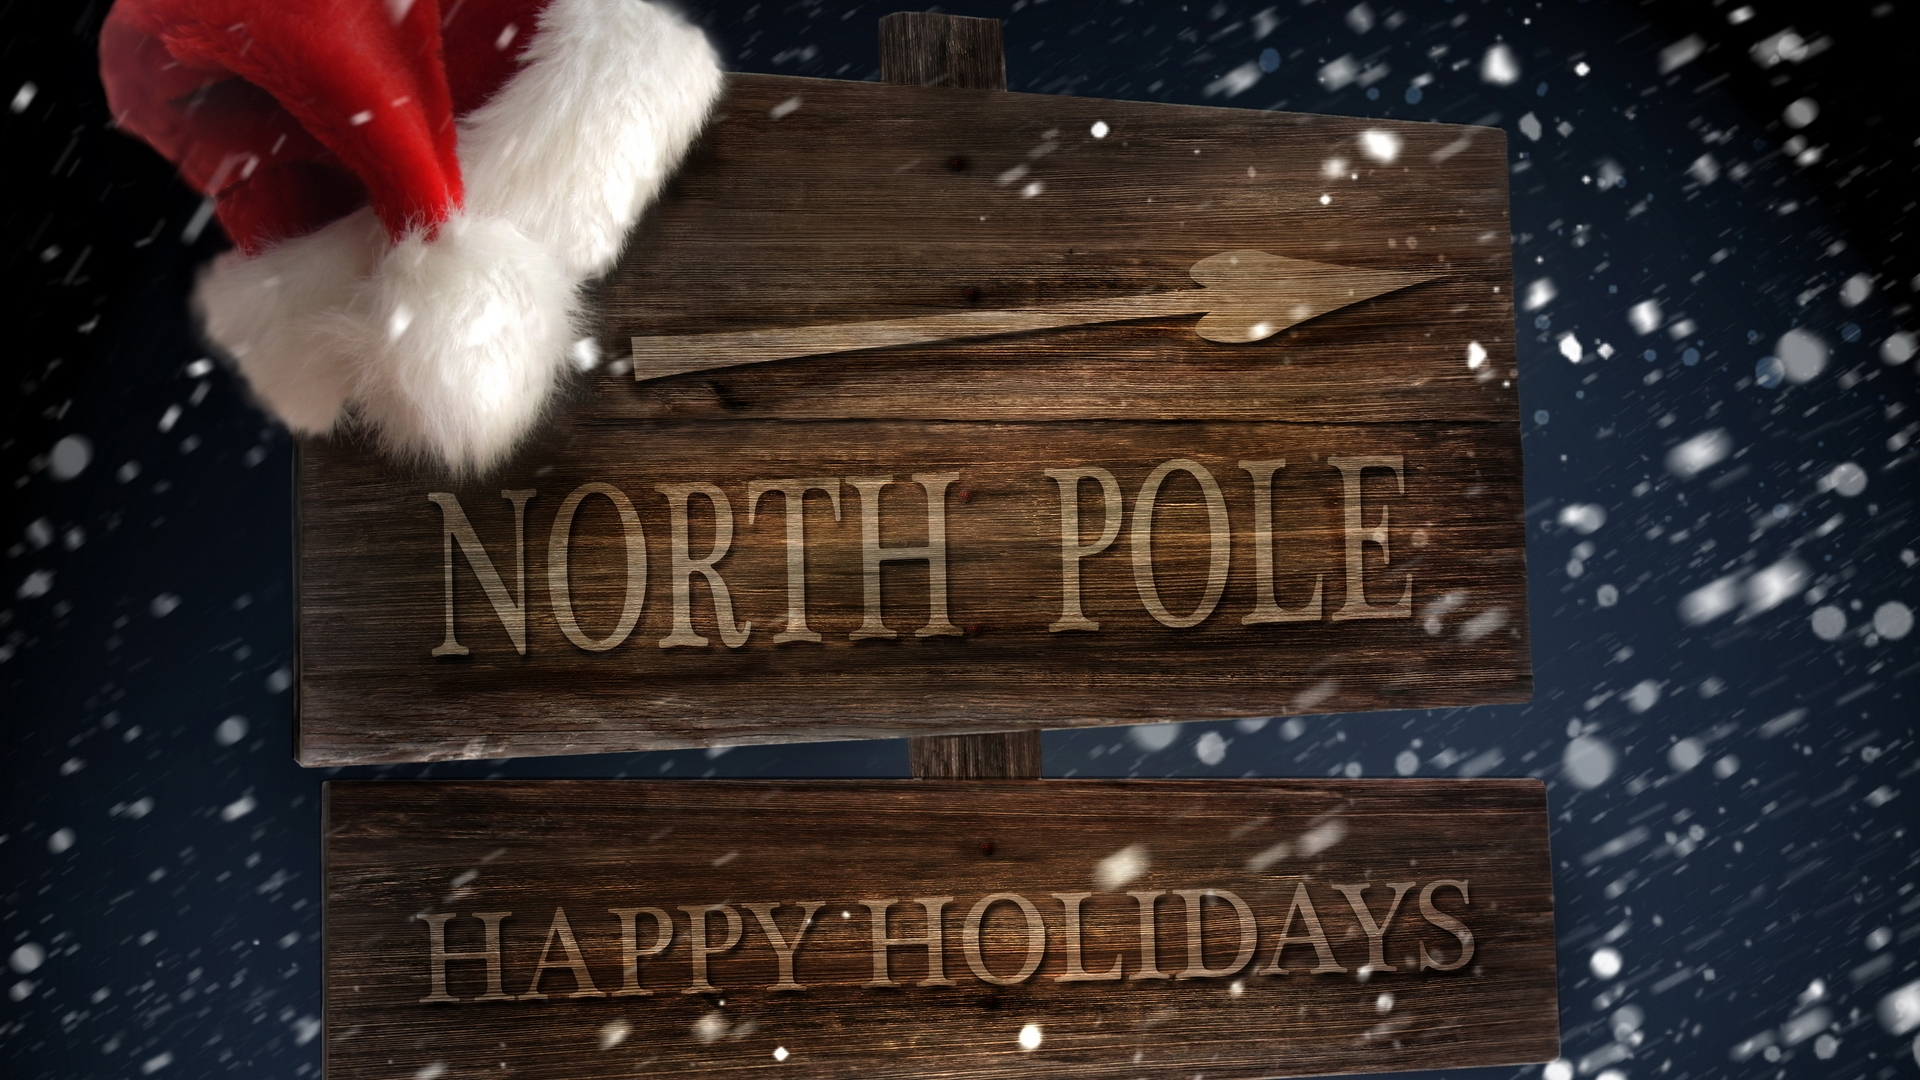 North Pole sign wallpapers North Pole sign stock photos 1920x1080